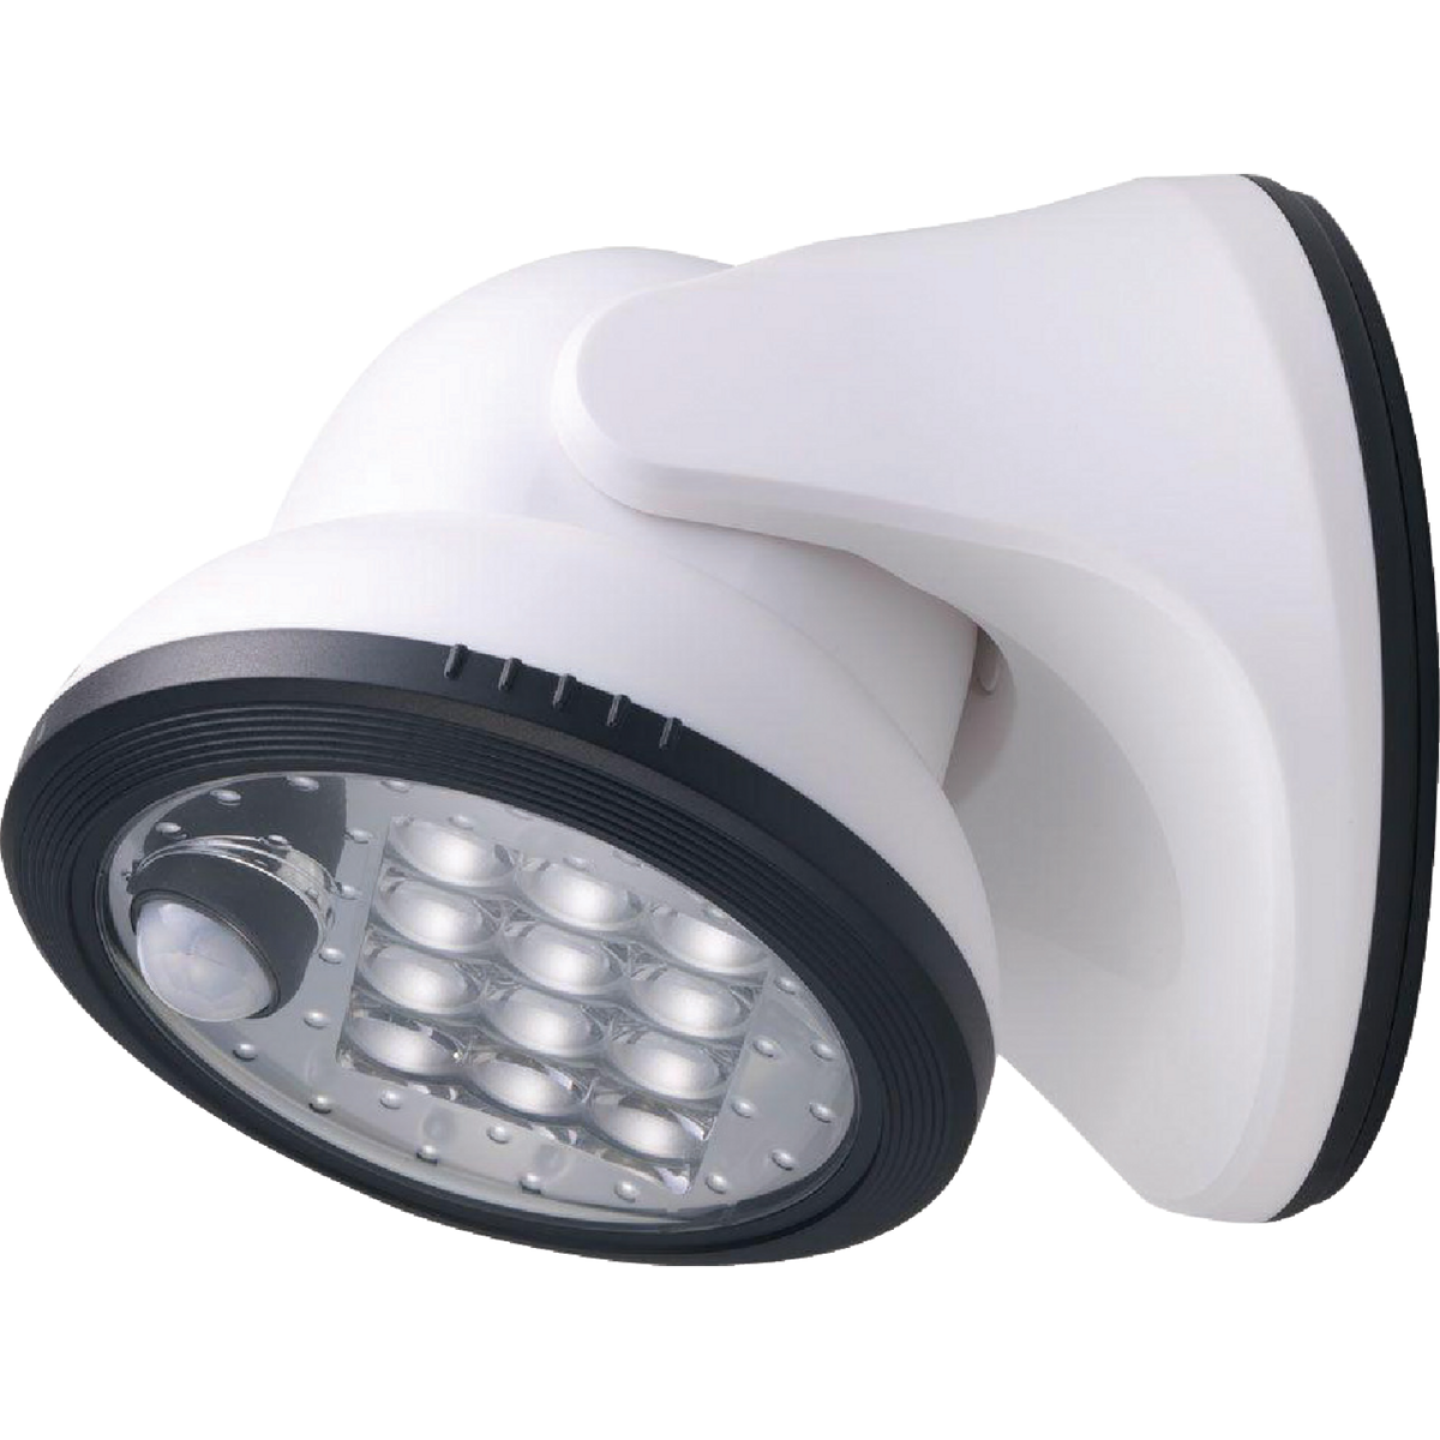 Light It White 275 Lm. LED Battery Operated Security Light Fixture Image 1